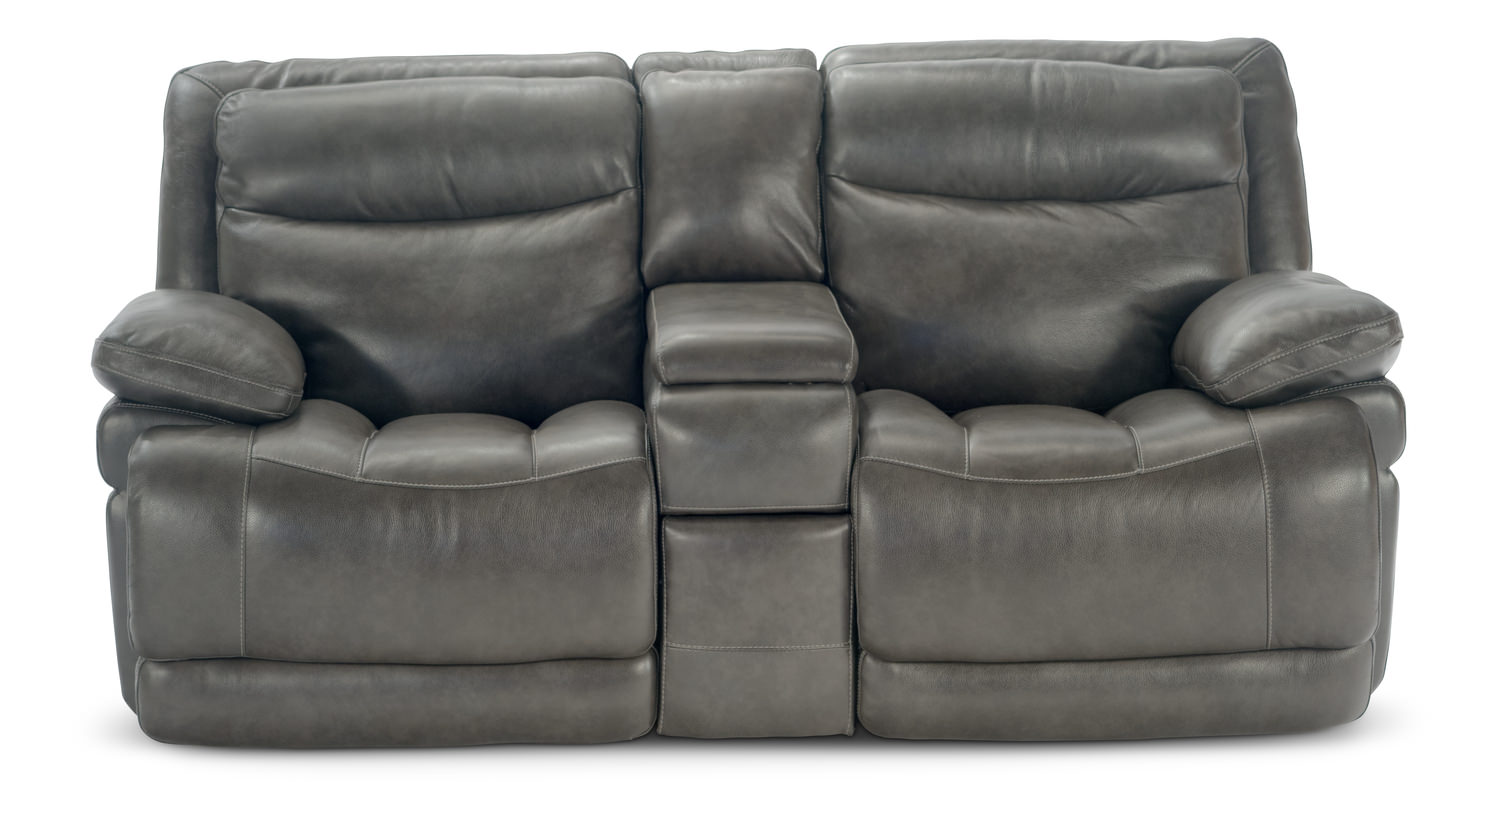 Rally Leather Power Recline Loveseat with Console ...  sc 1 st  HOM Furniture & Rally Leather Power Recline Loveseat with Console | HOM Furniture islam-shia.org